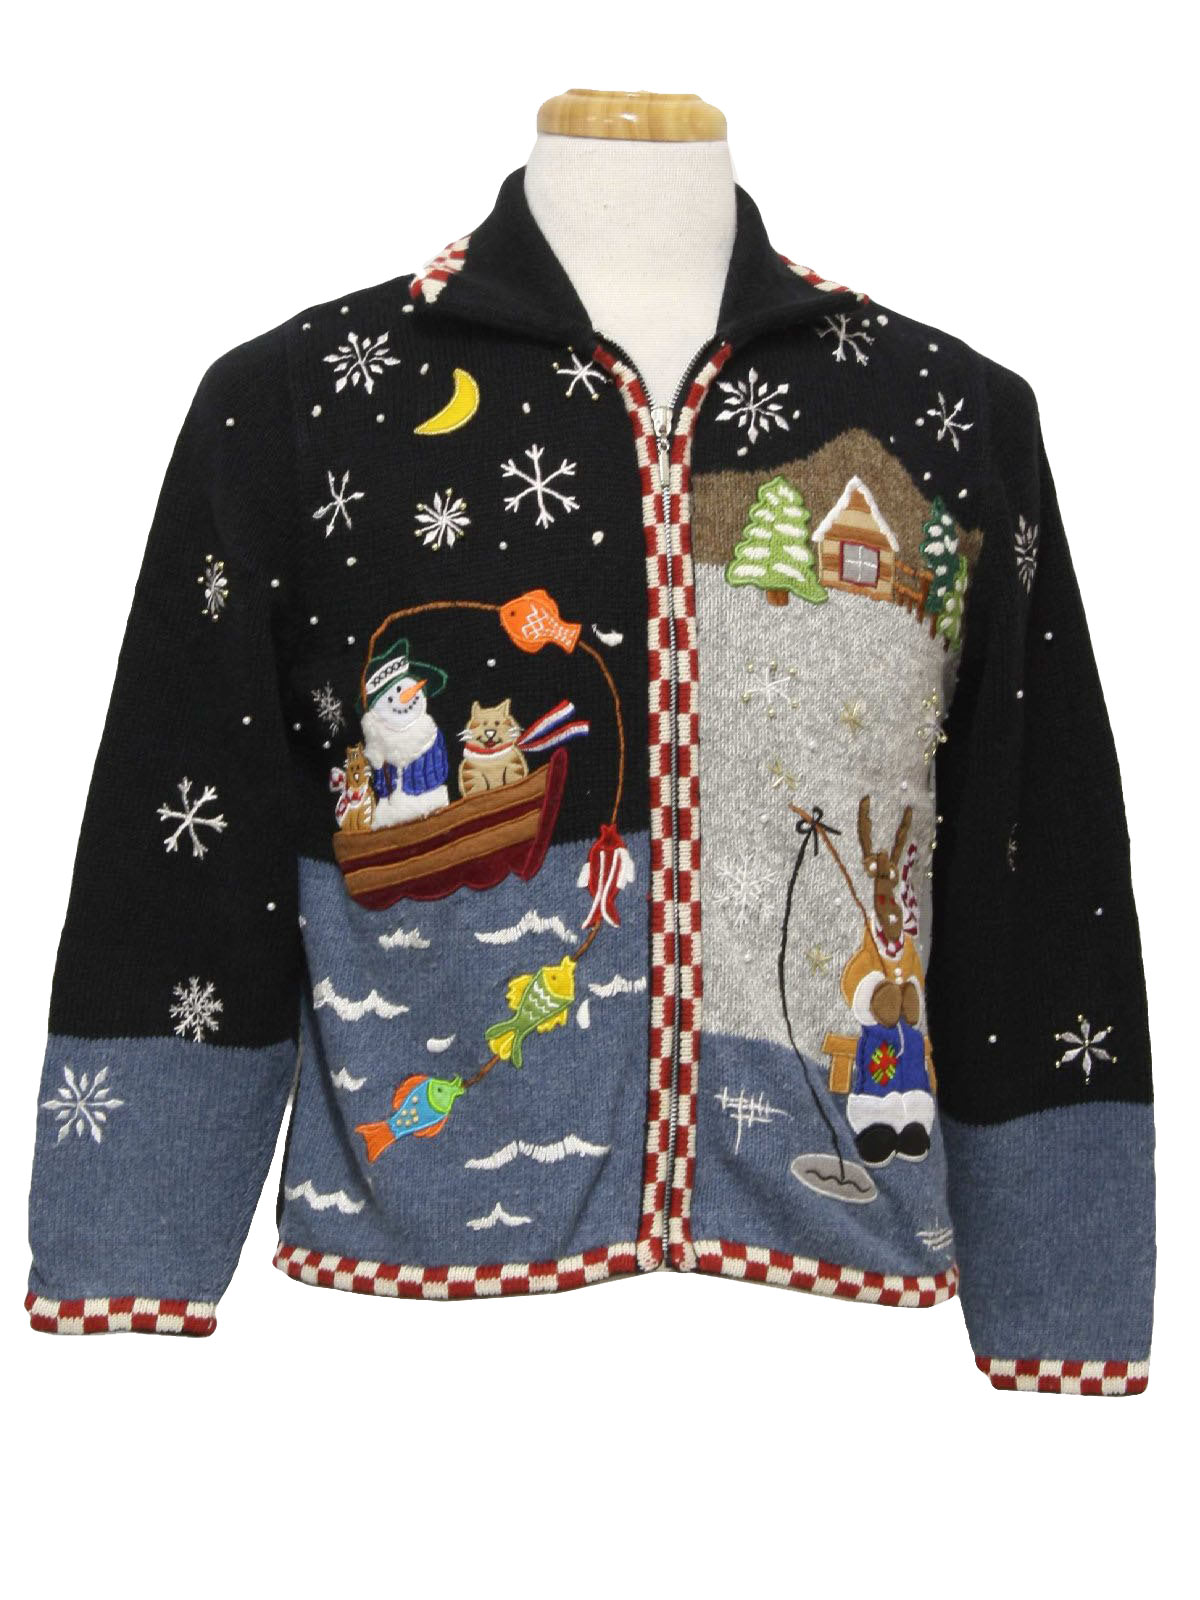 Womens Ugly Christmas Sweater Ambra Womens Black And Multi Color Cotton Ramie Nylon Acrylic And Wool Blend Longsleeve Cardigan Style Ugly